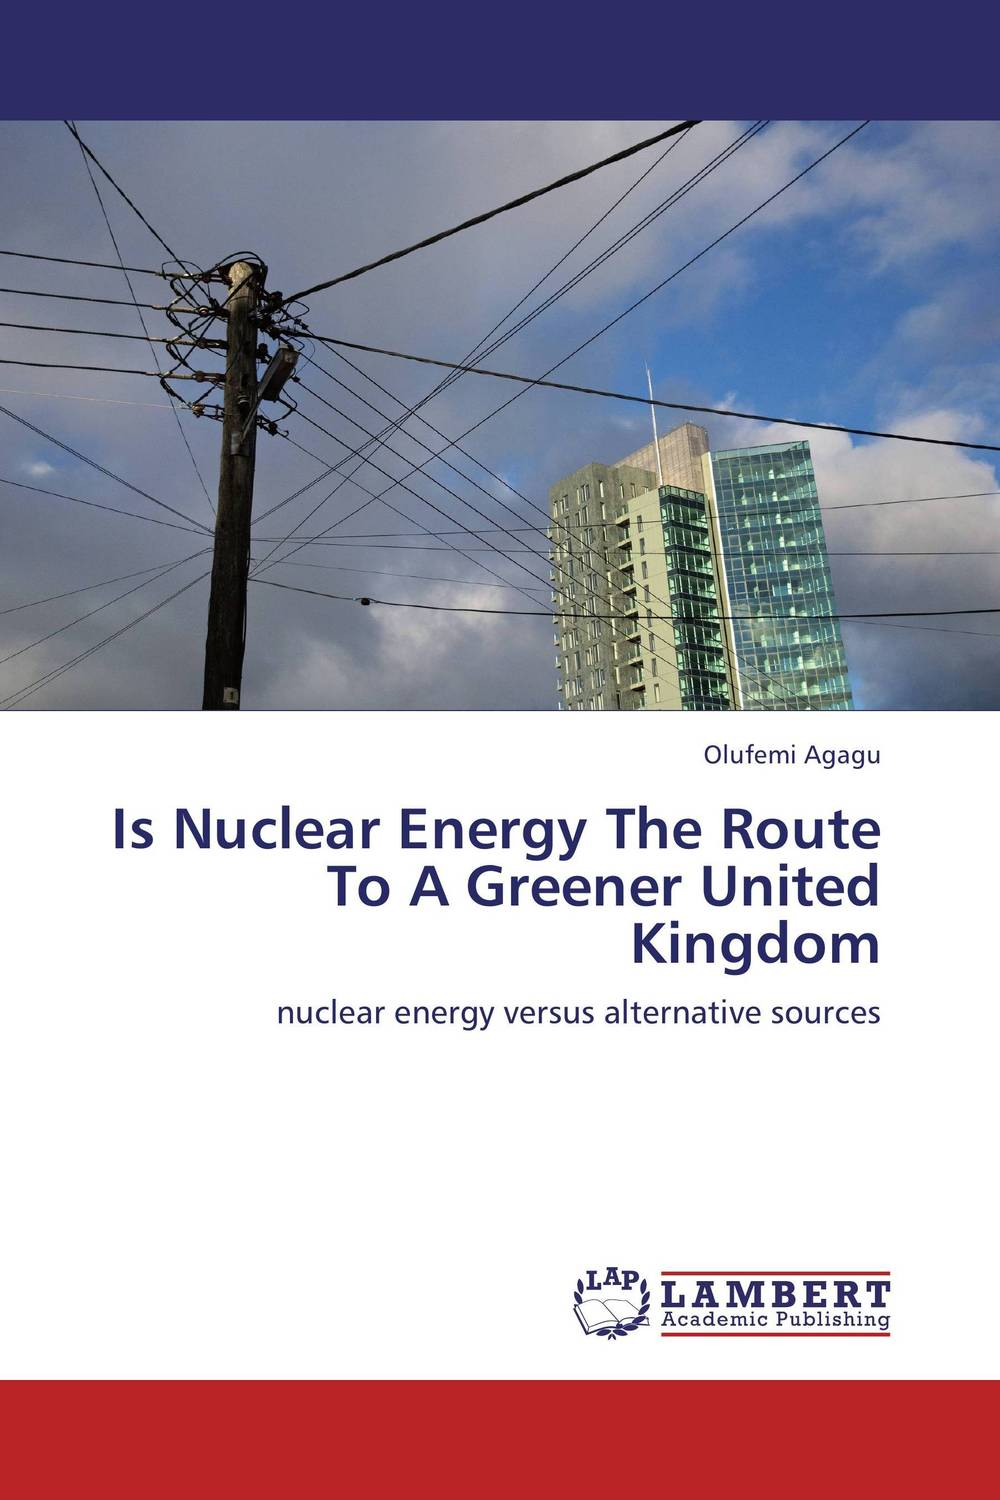 Is Nuclear Energy The Route To A Greener United Kingdom alex raynham future energy